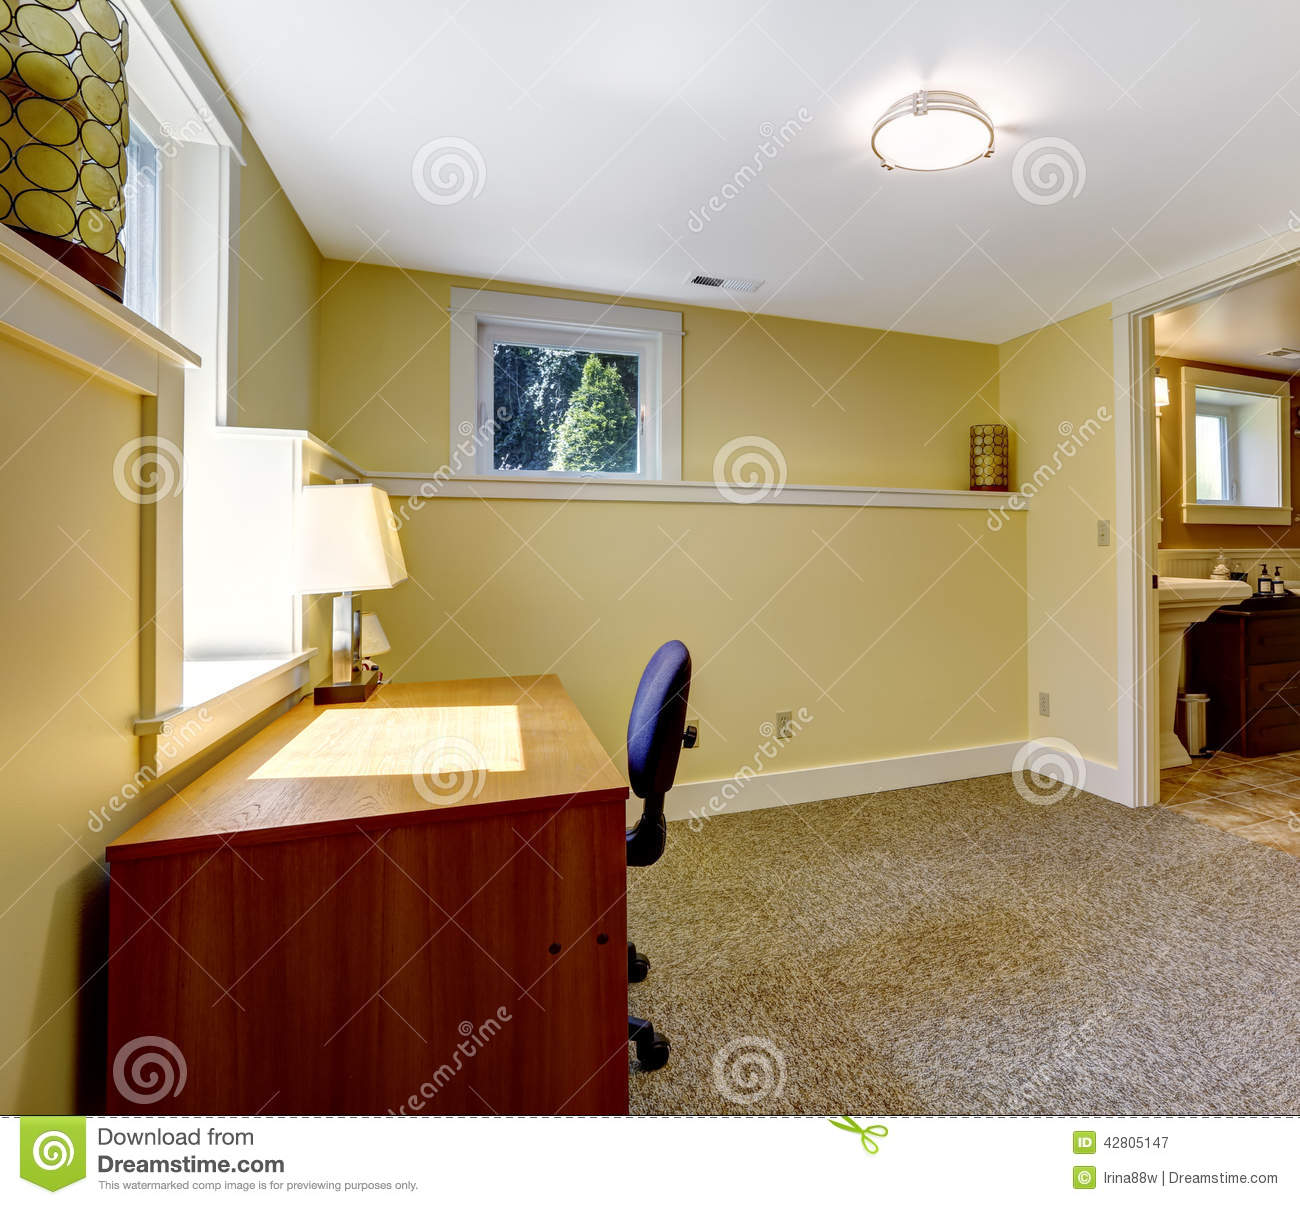 Empty Office Room With Bookshelf And Desk Stock Image - Image of ...